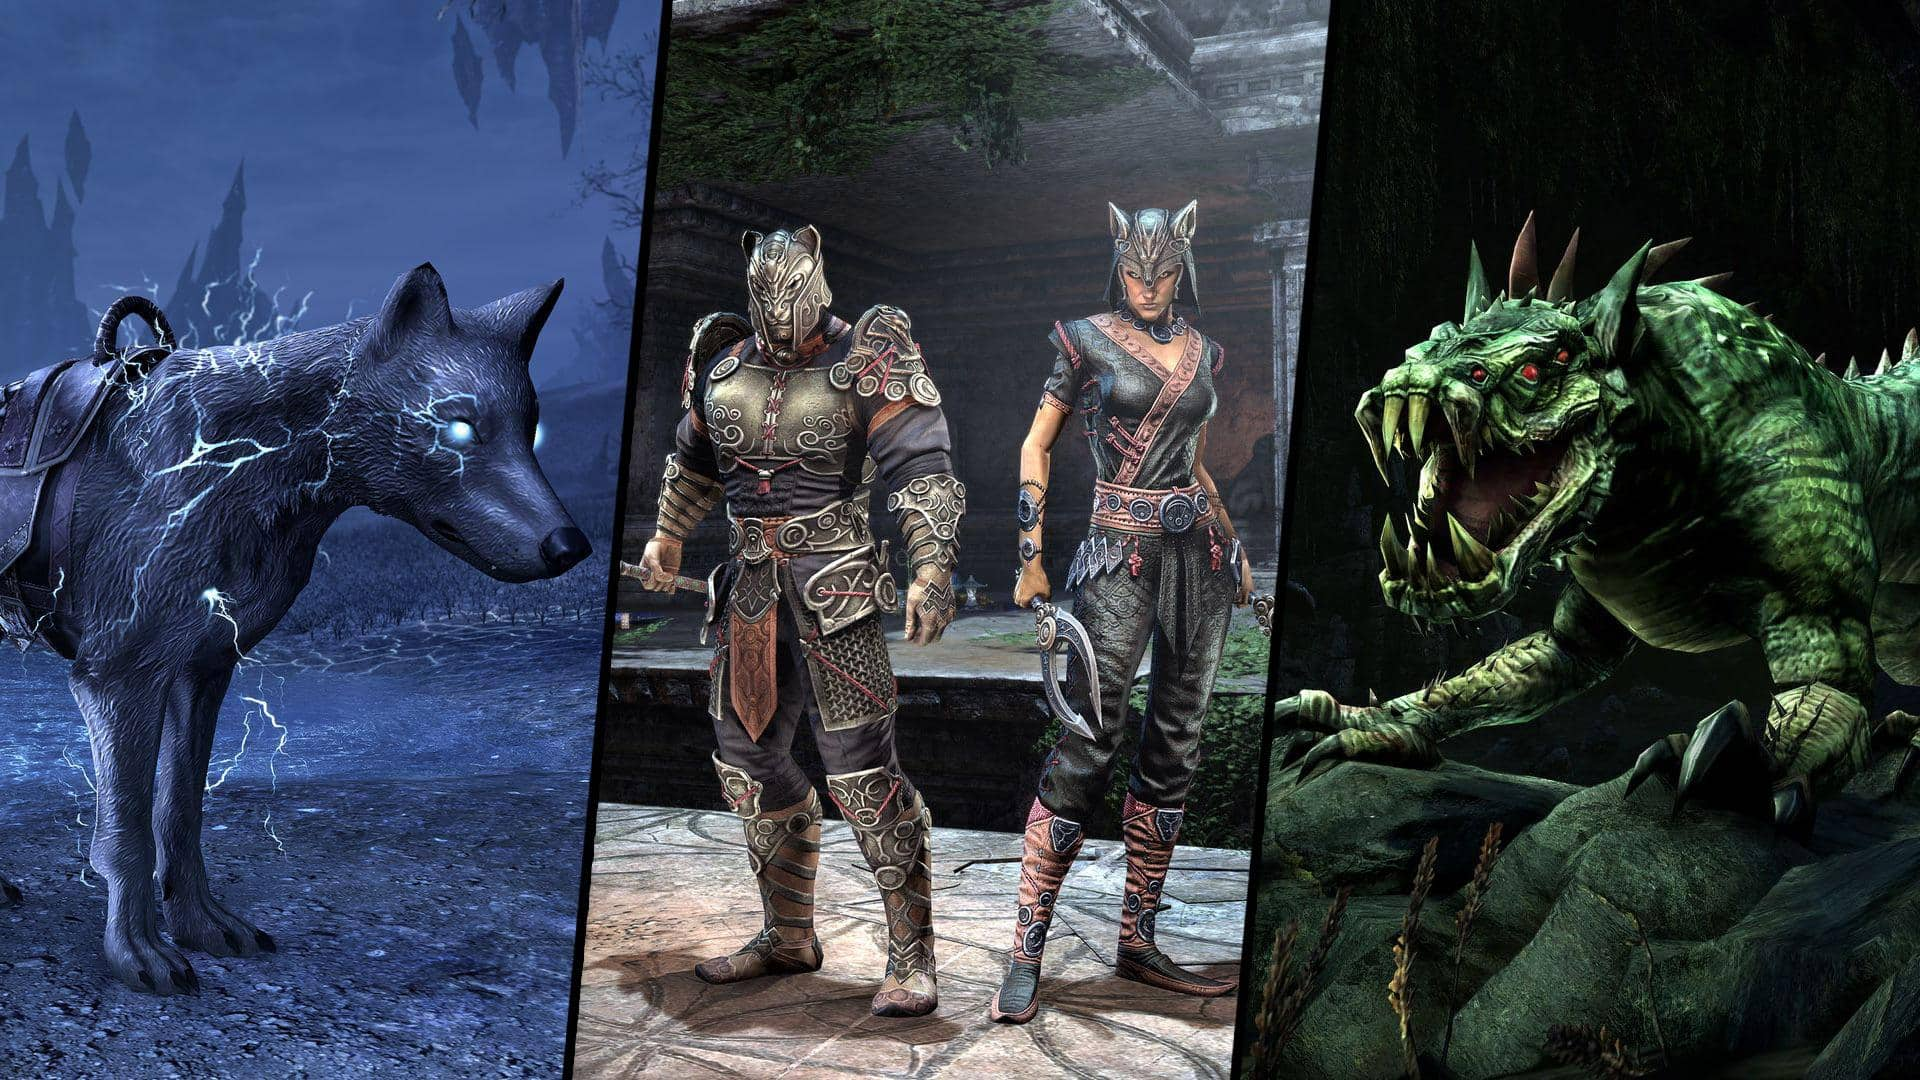 [PC - ALL SERVERS] Selling ESO Crowns & Crown Store items - Cheap & Safe!